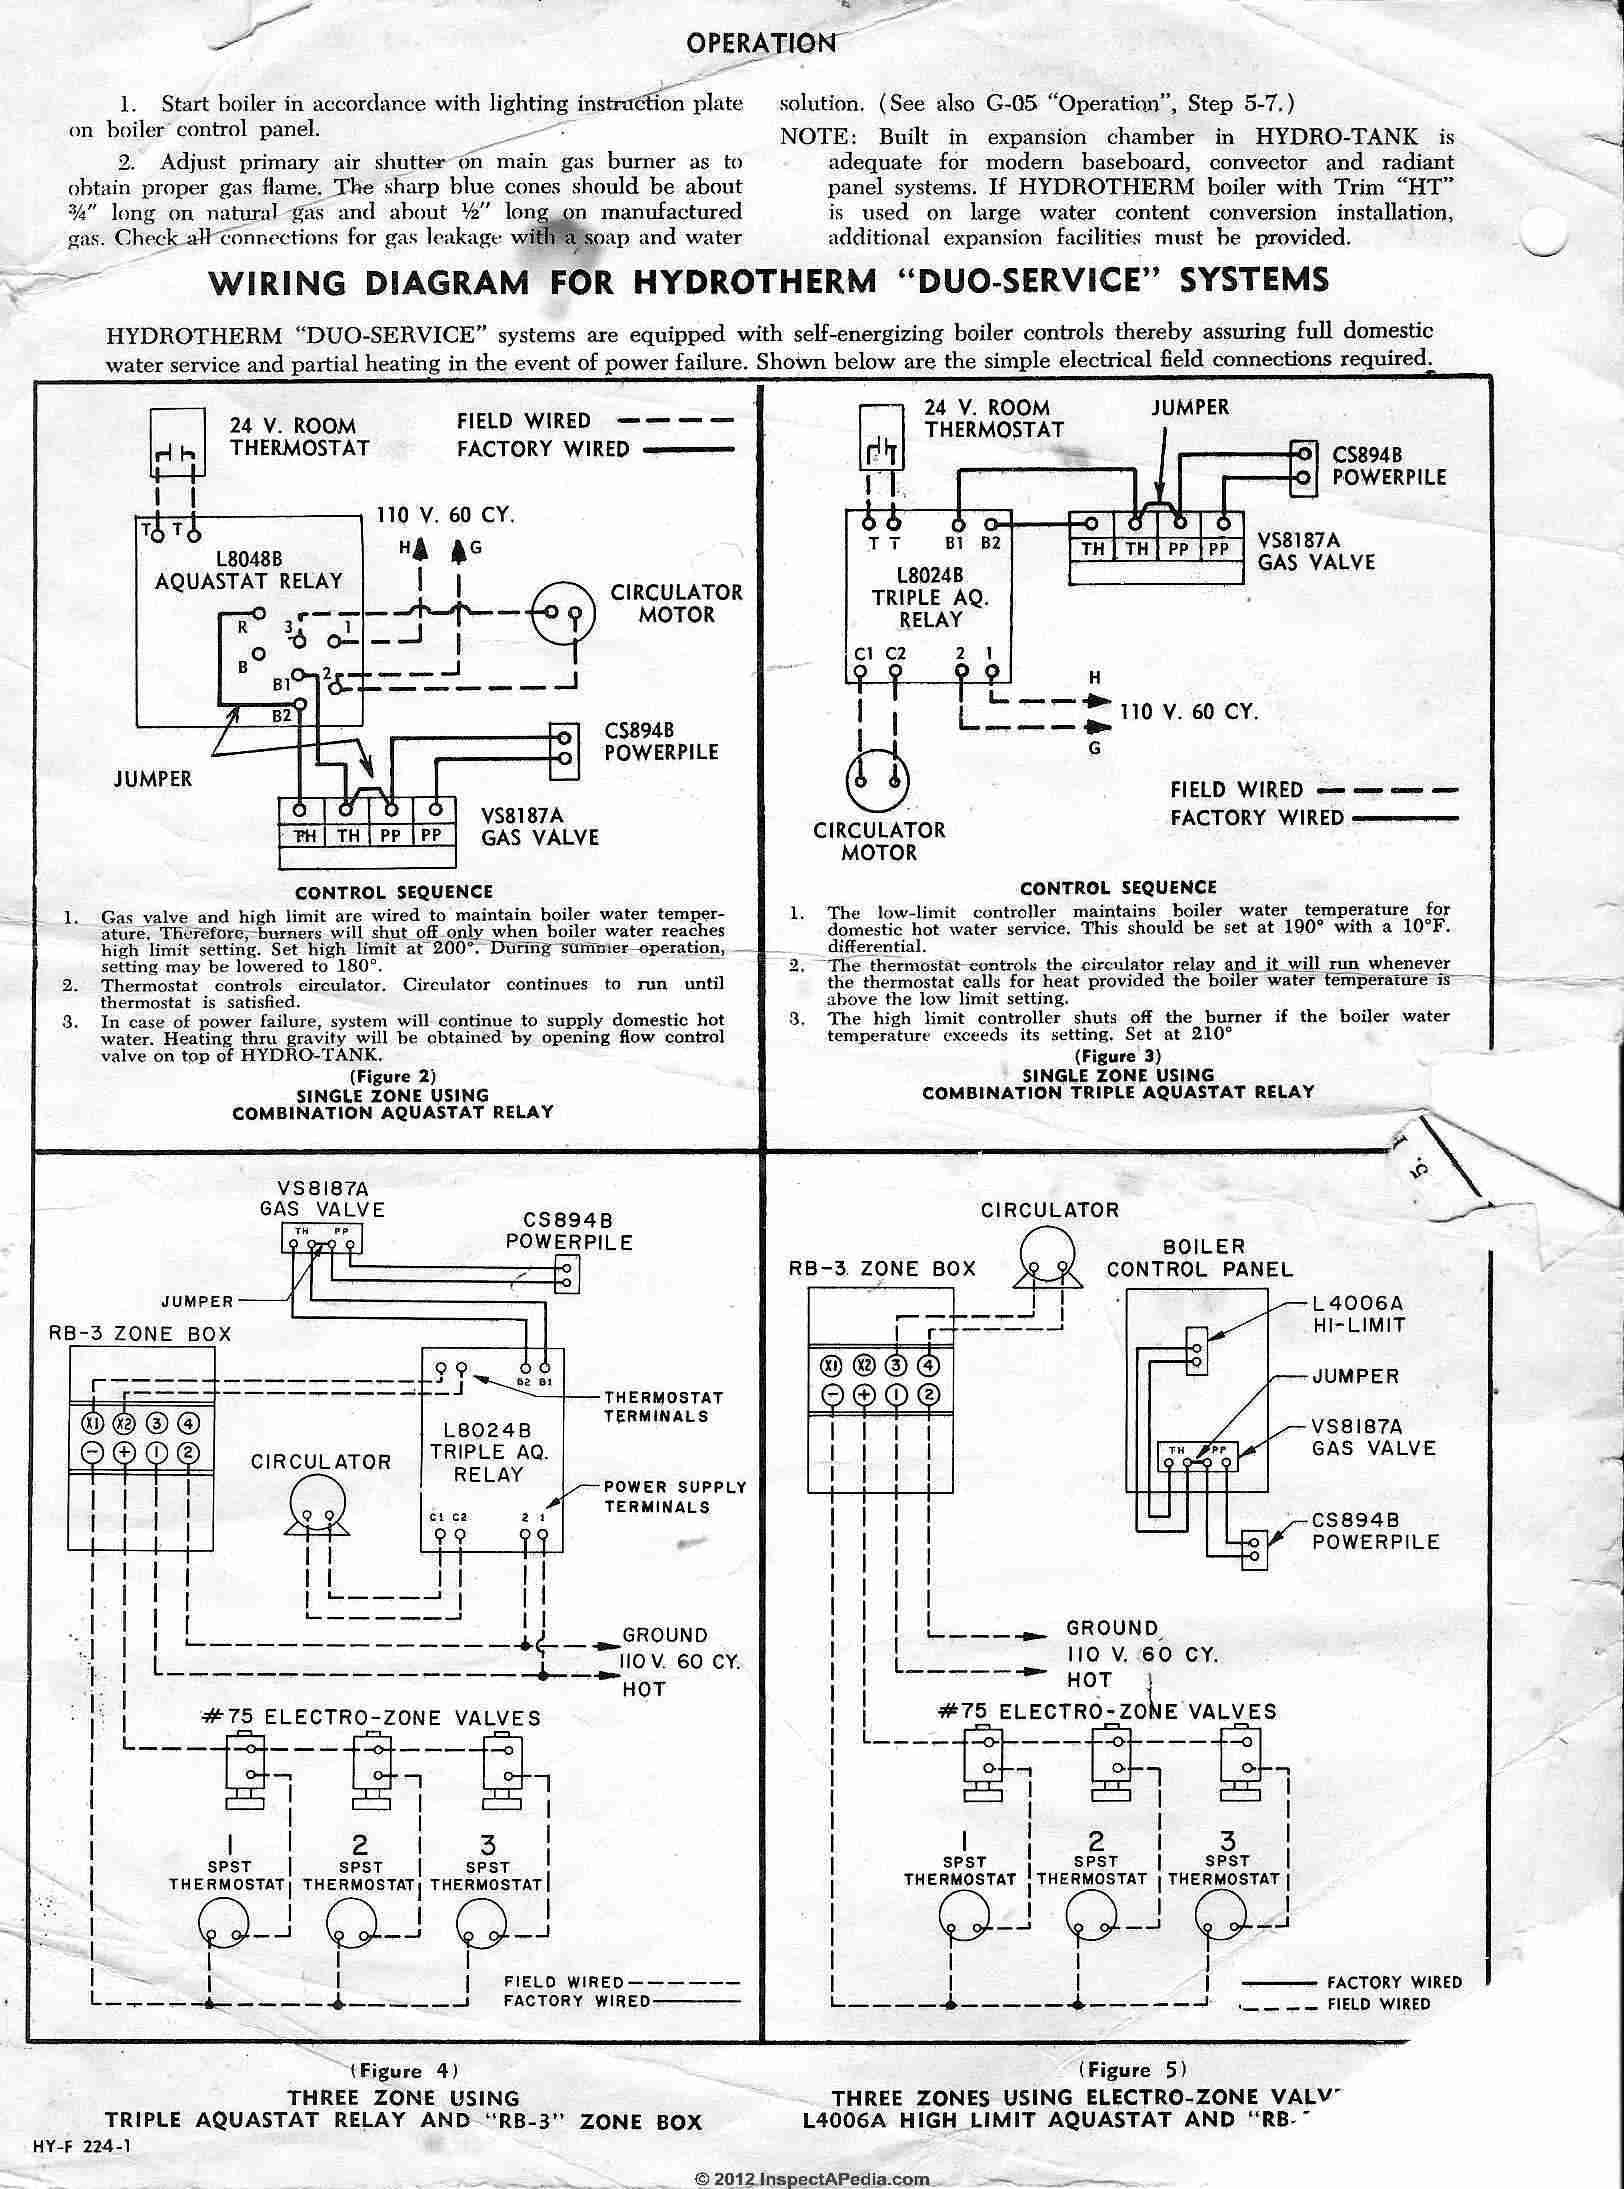 L8024B_Aquastat_0422_DJFcs heating boiler aquastat control diagnosis, troubleshooting, repair wiring diagram for honeywell r8184m at reclaimingppi.co